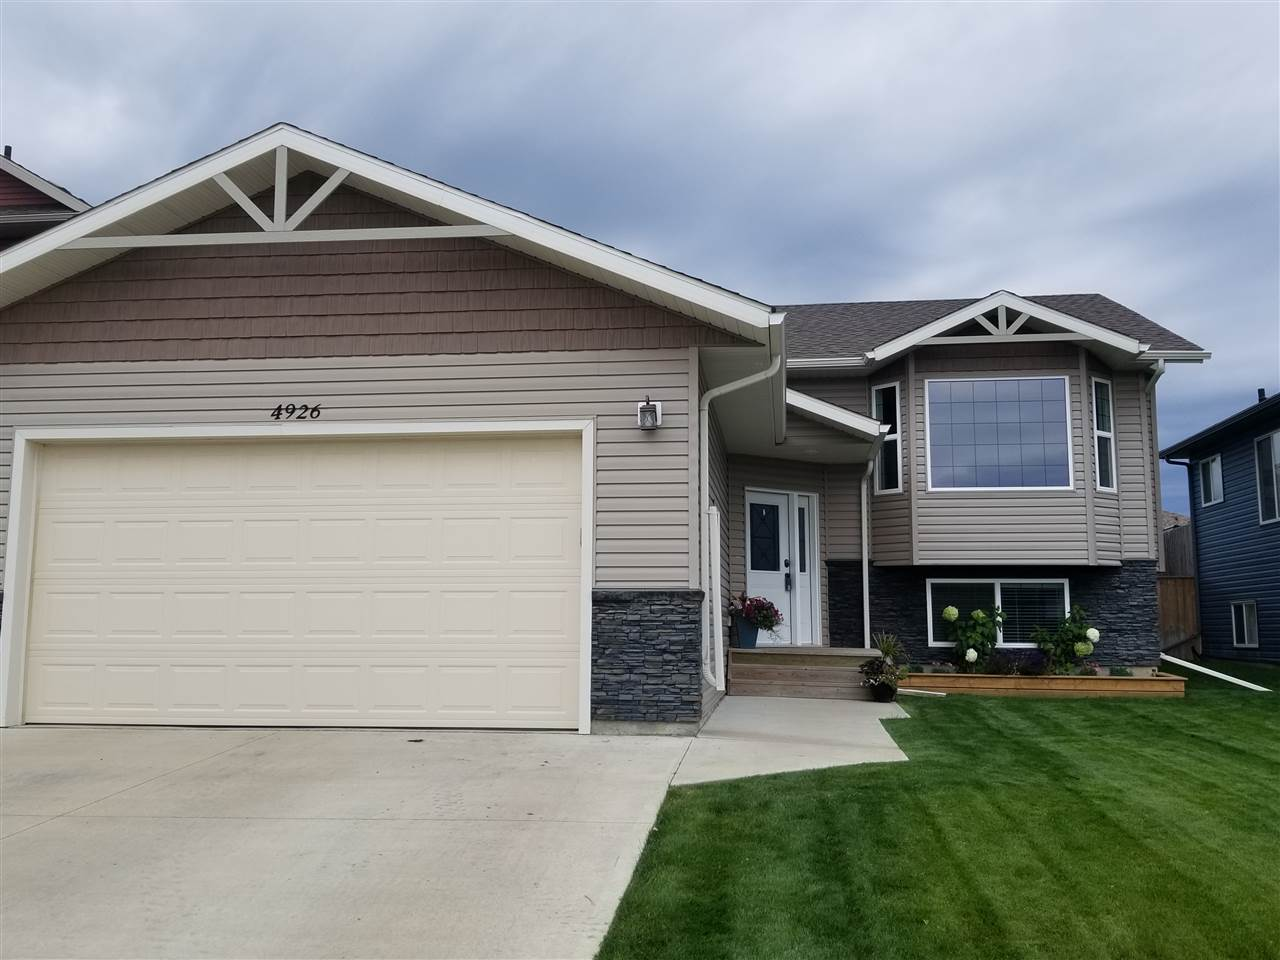 MLS® listing #E4170618 for sale located at 4926 58 Avenue